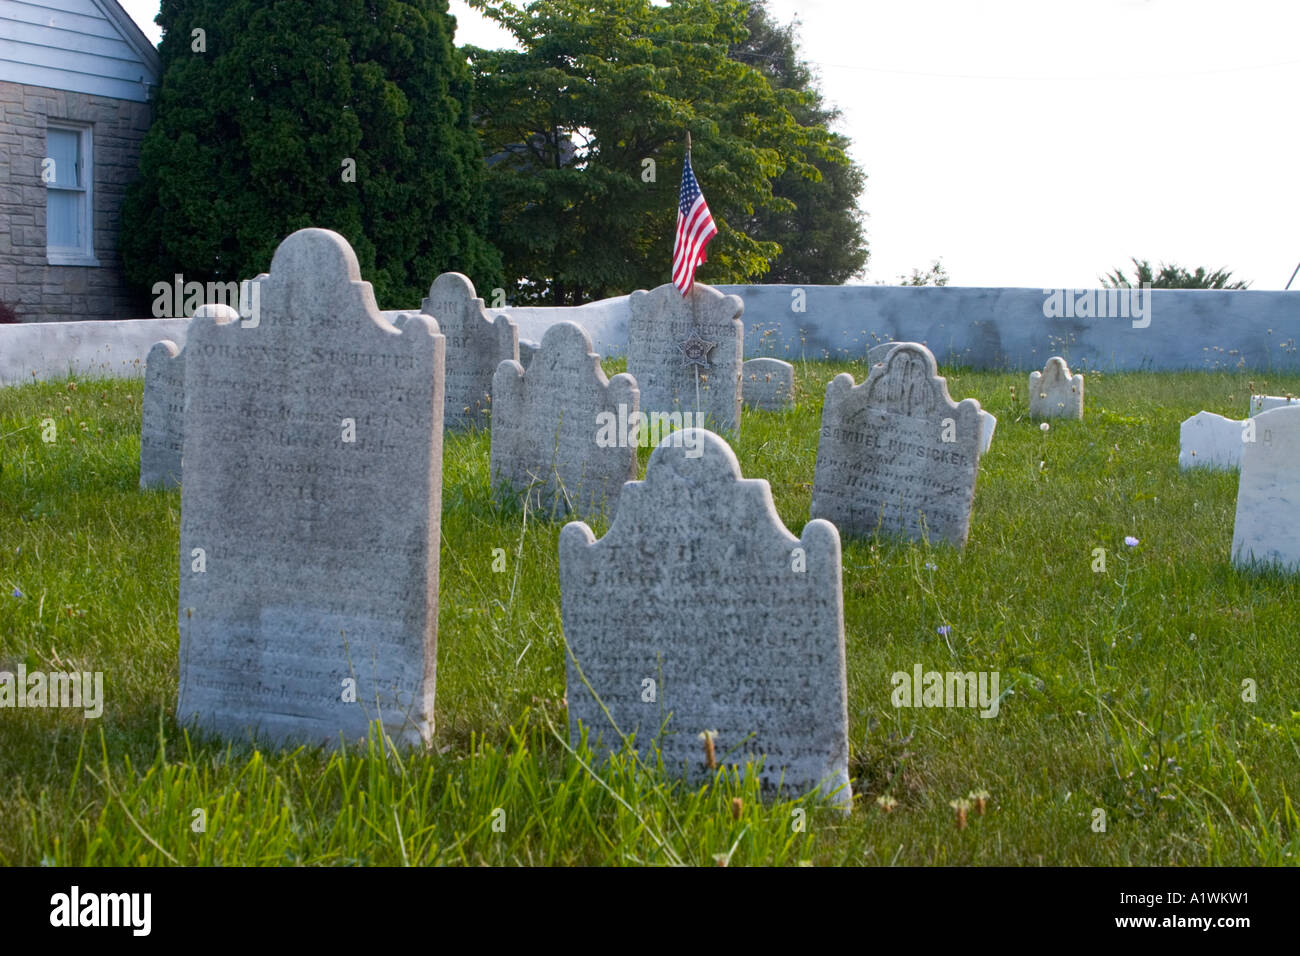 Frantz Cemetery in Paradise, PA at the intersection of Belmont and Harristown Roads. - Stock Image